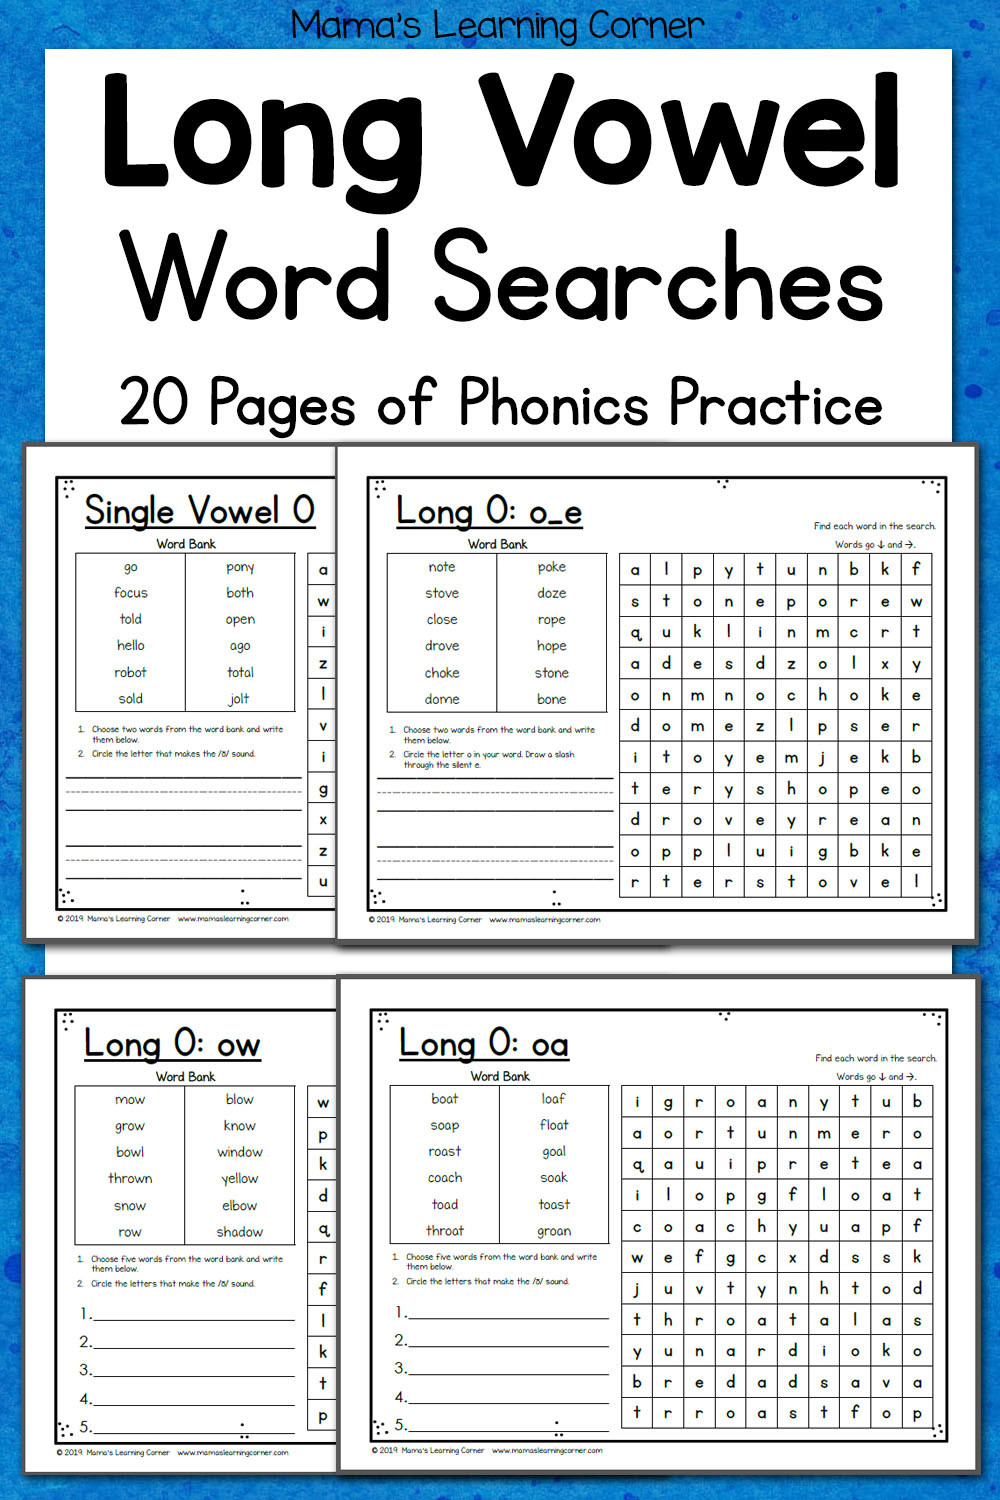 Long Vowels Worksheets First Grade Long Vowel Word Search Puzzles Mamas Learning Corner